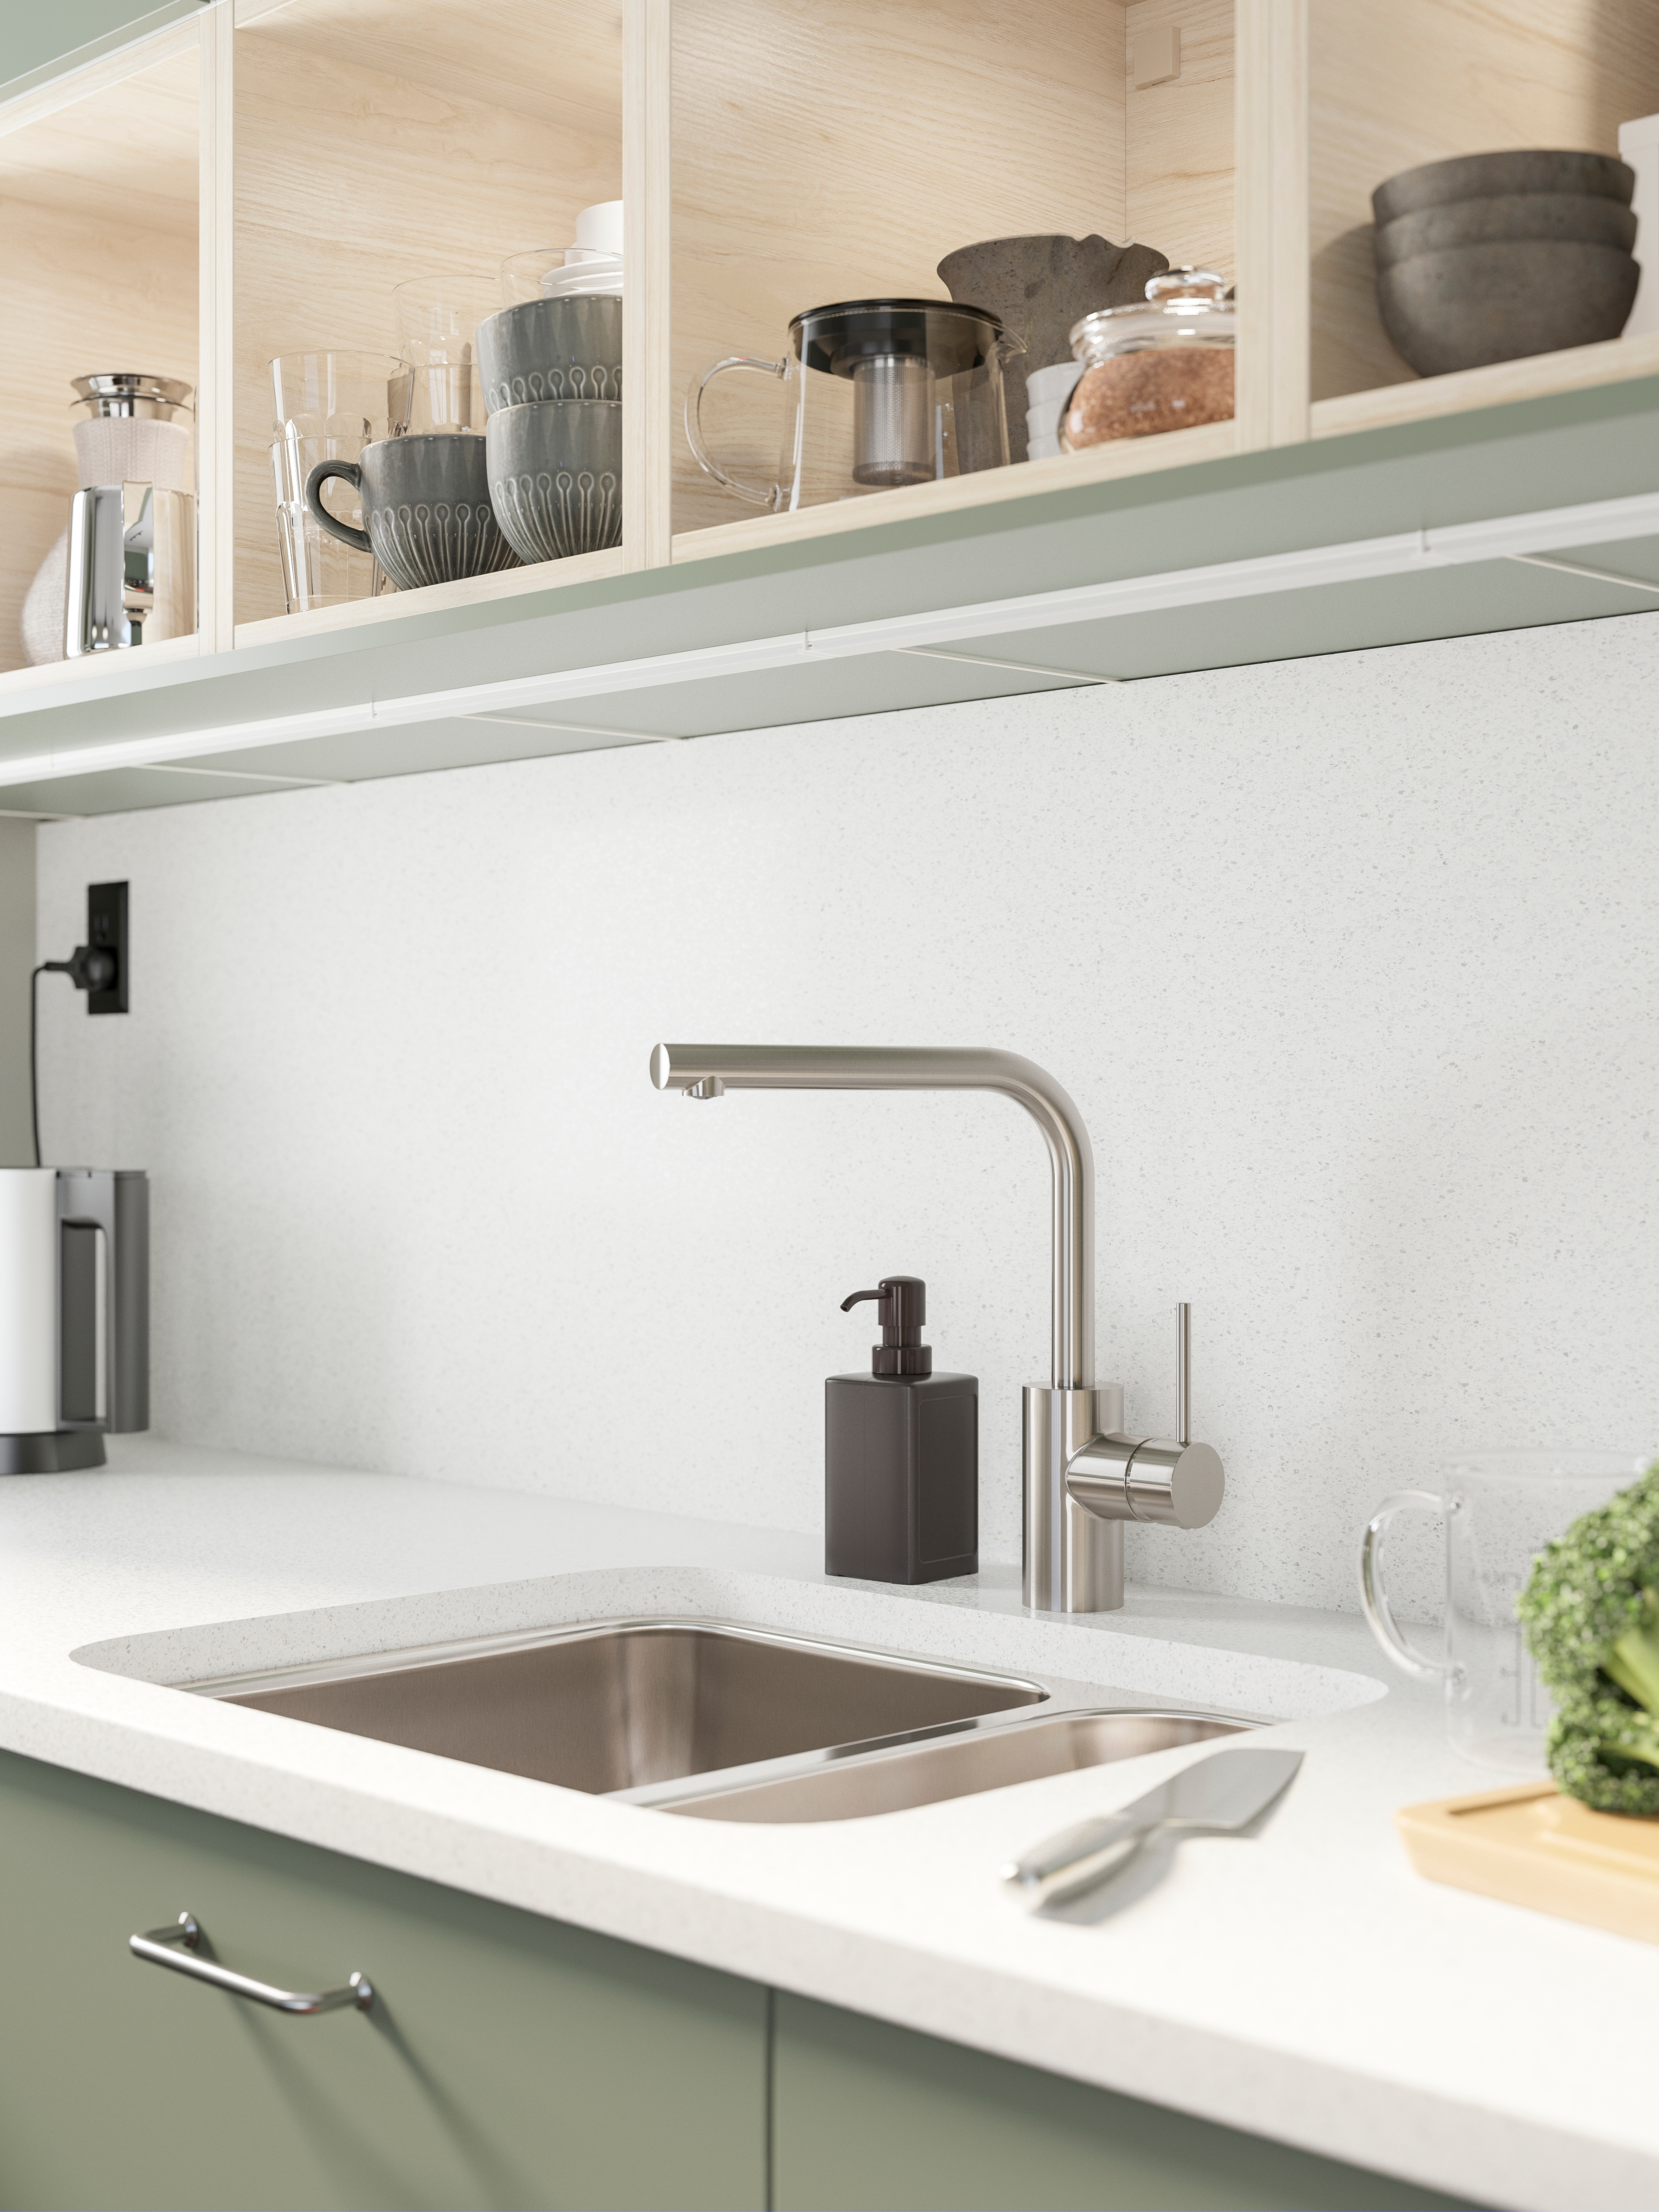 TÄMNAREN kitchen mixer tap, over a stainless-steel kitchen sink on a white countertop, and kitchen items in open cabinets.